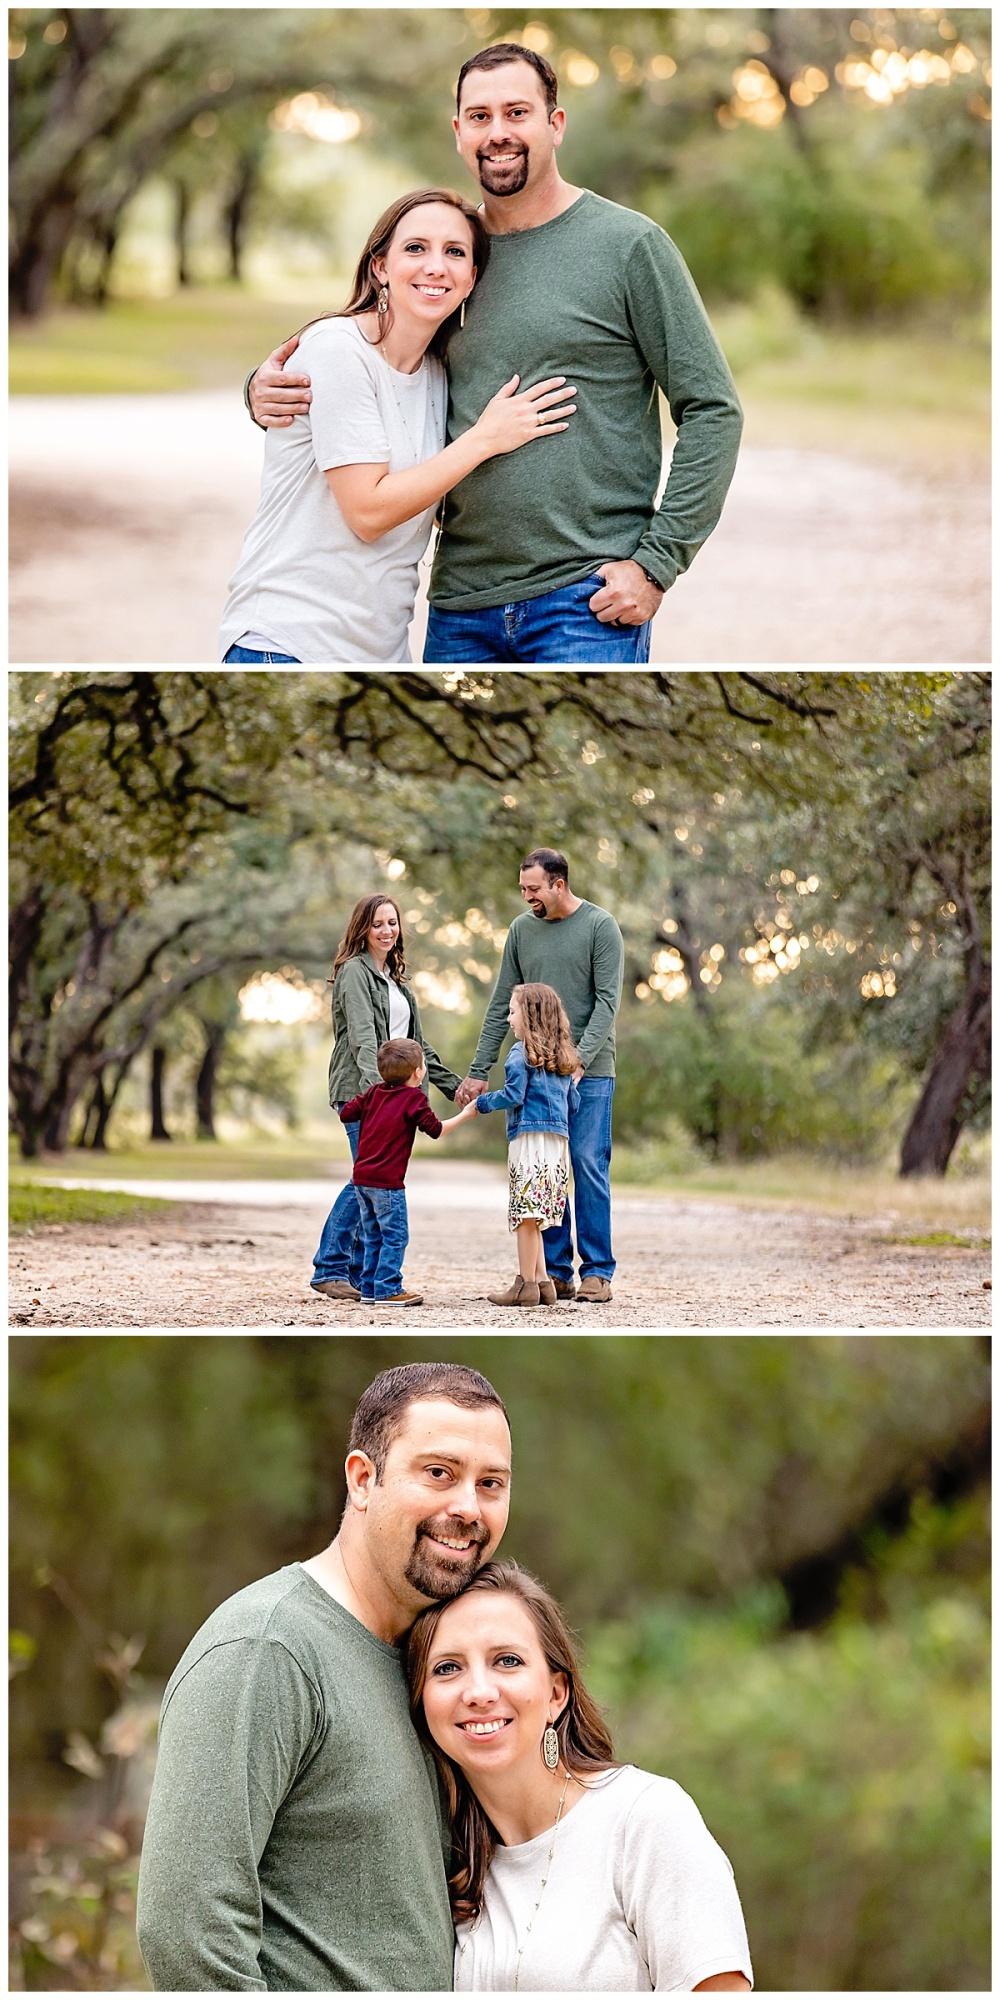 Family-Photographer-LaVernia-Texas-Carly-Barton-Photography-Latham_0009.jpg